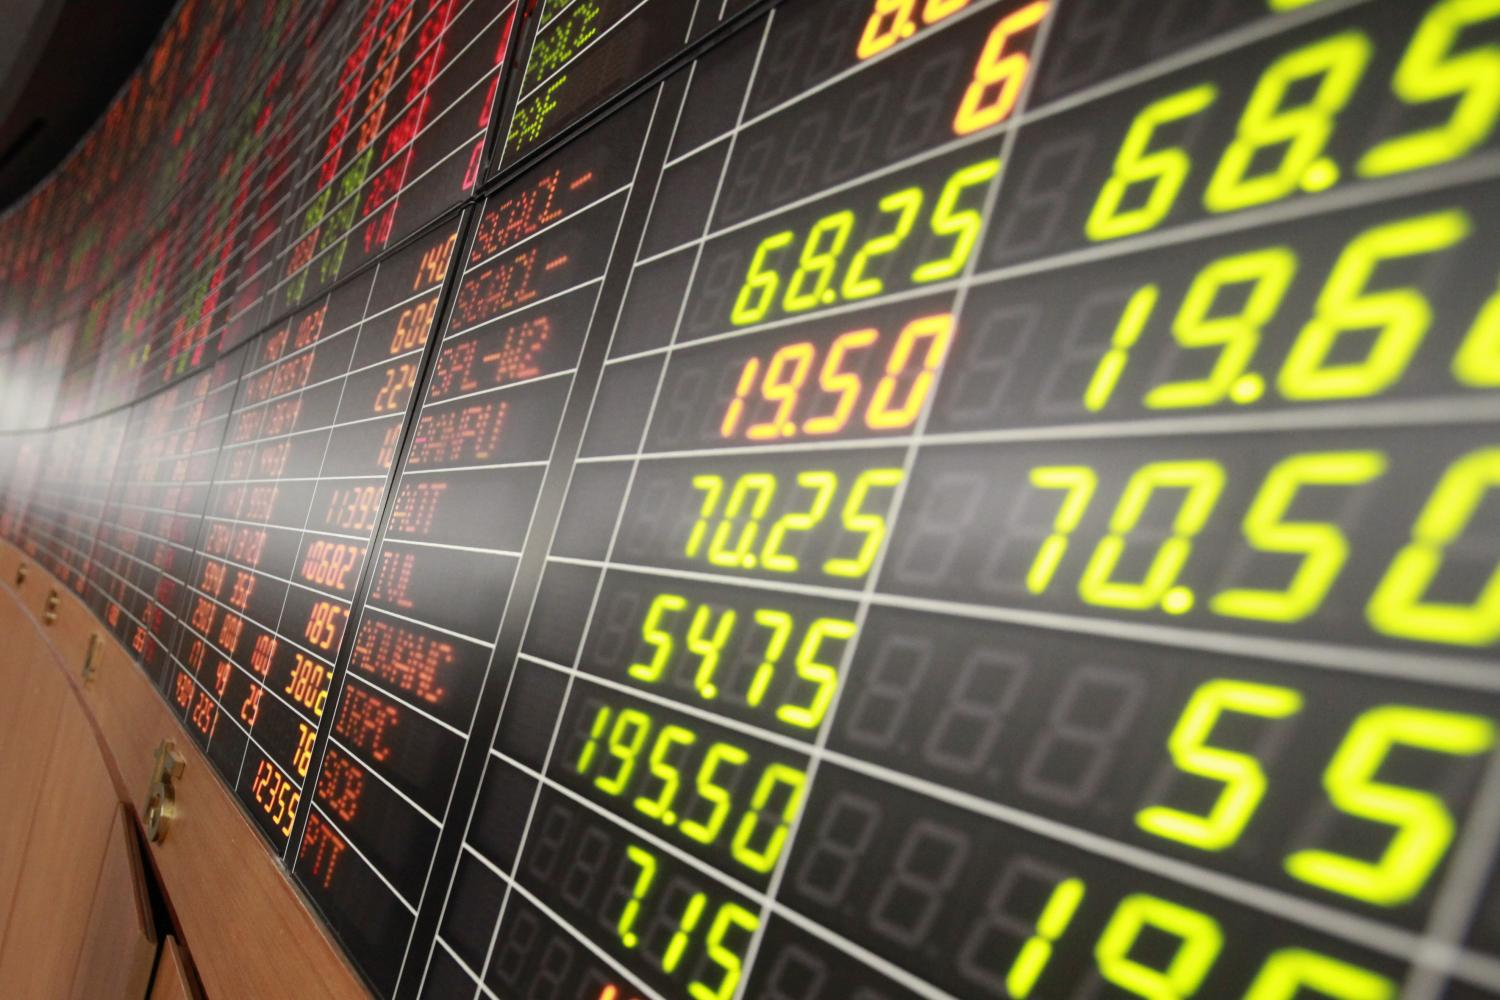 The SET Index closed at 1496.78 points at the end of February, up 2% from January. (Photo by Pornprom Satrabhaya)